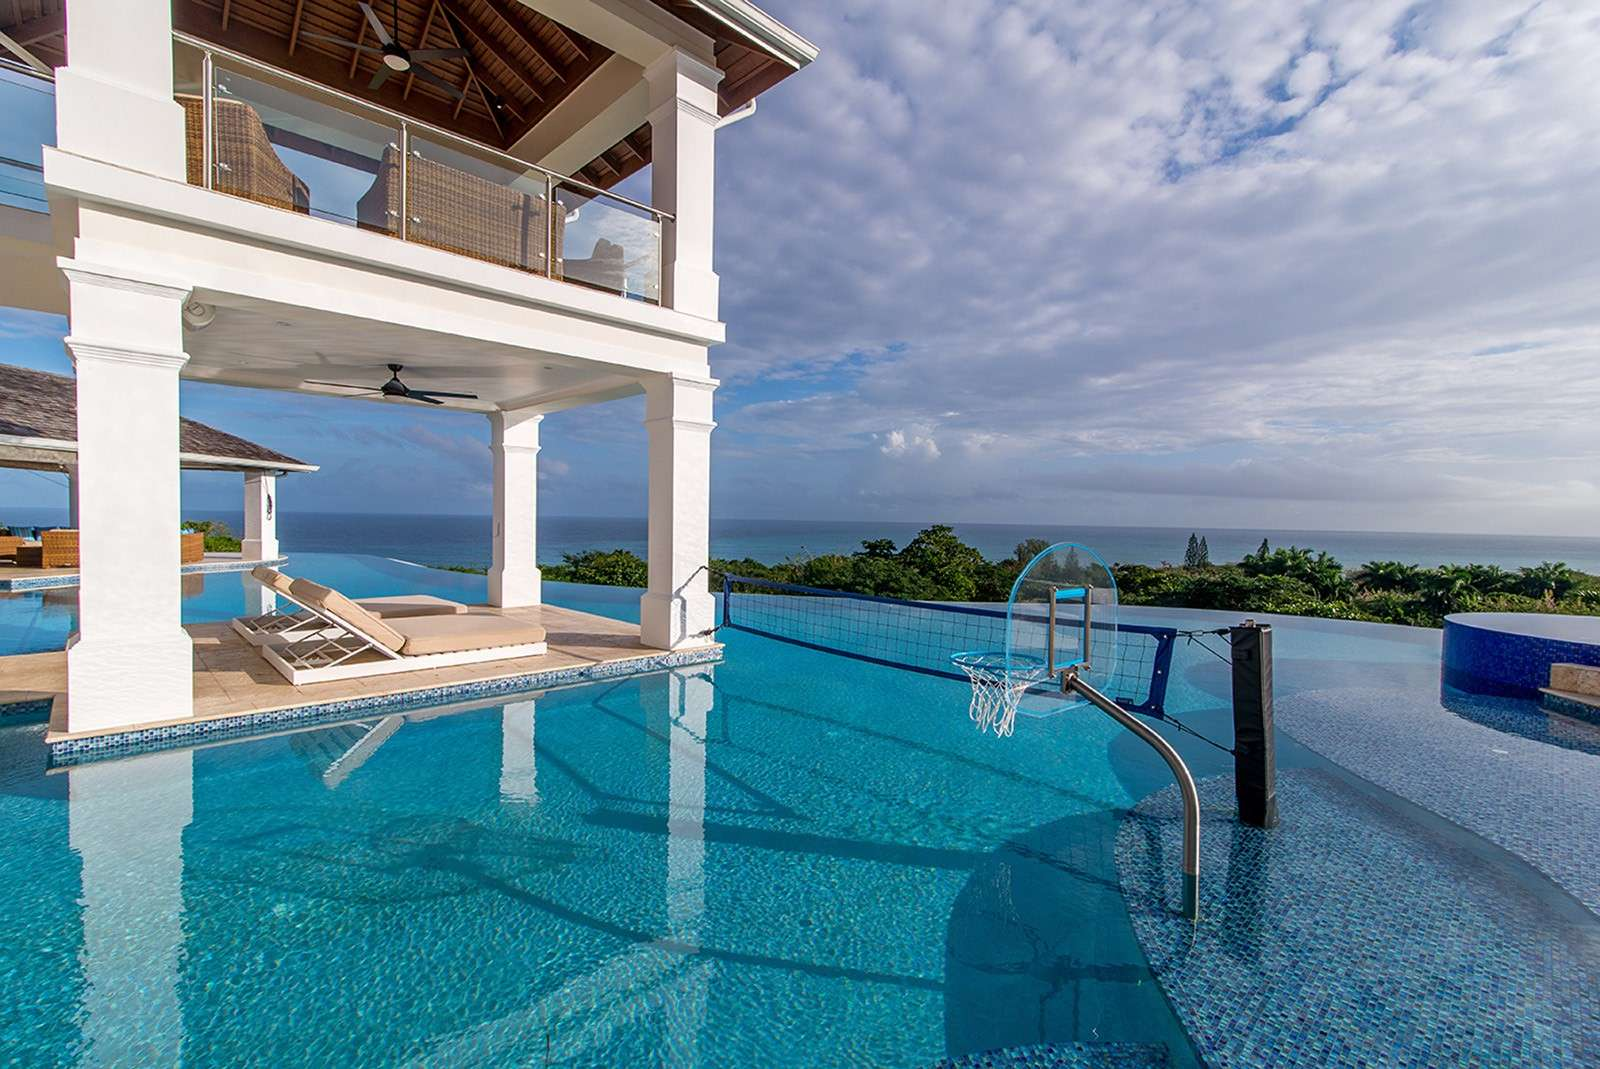 Luxury villa rentals caribbean - Jamaica - Try all club - Dragonfly - Image 1/24